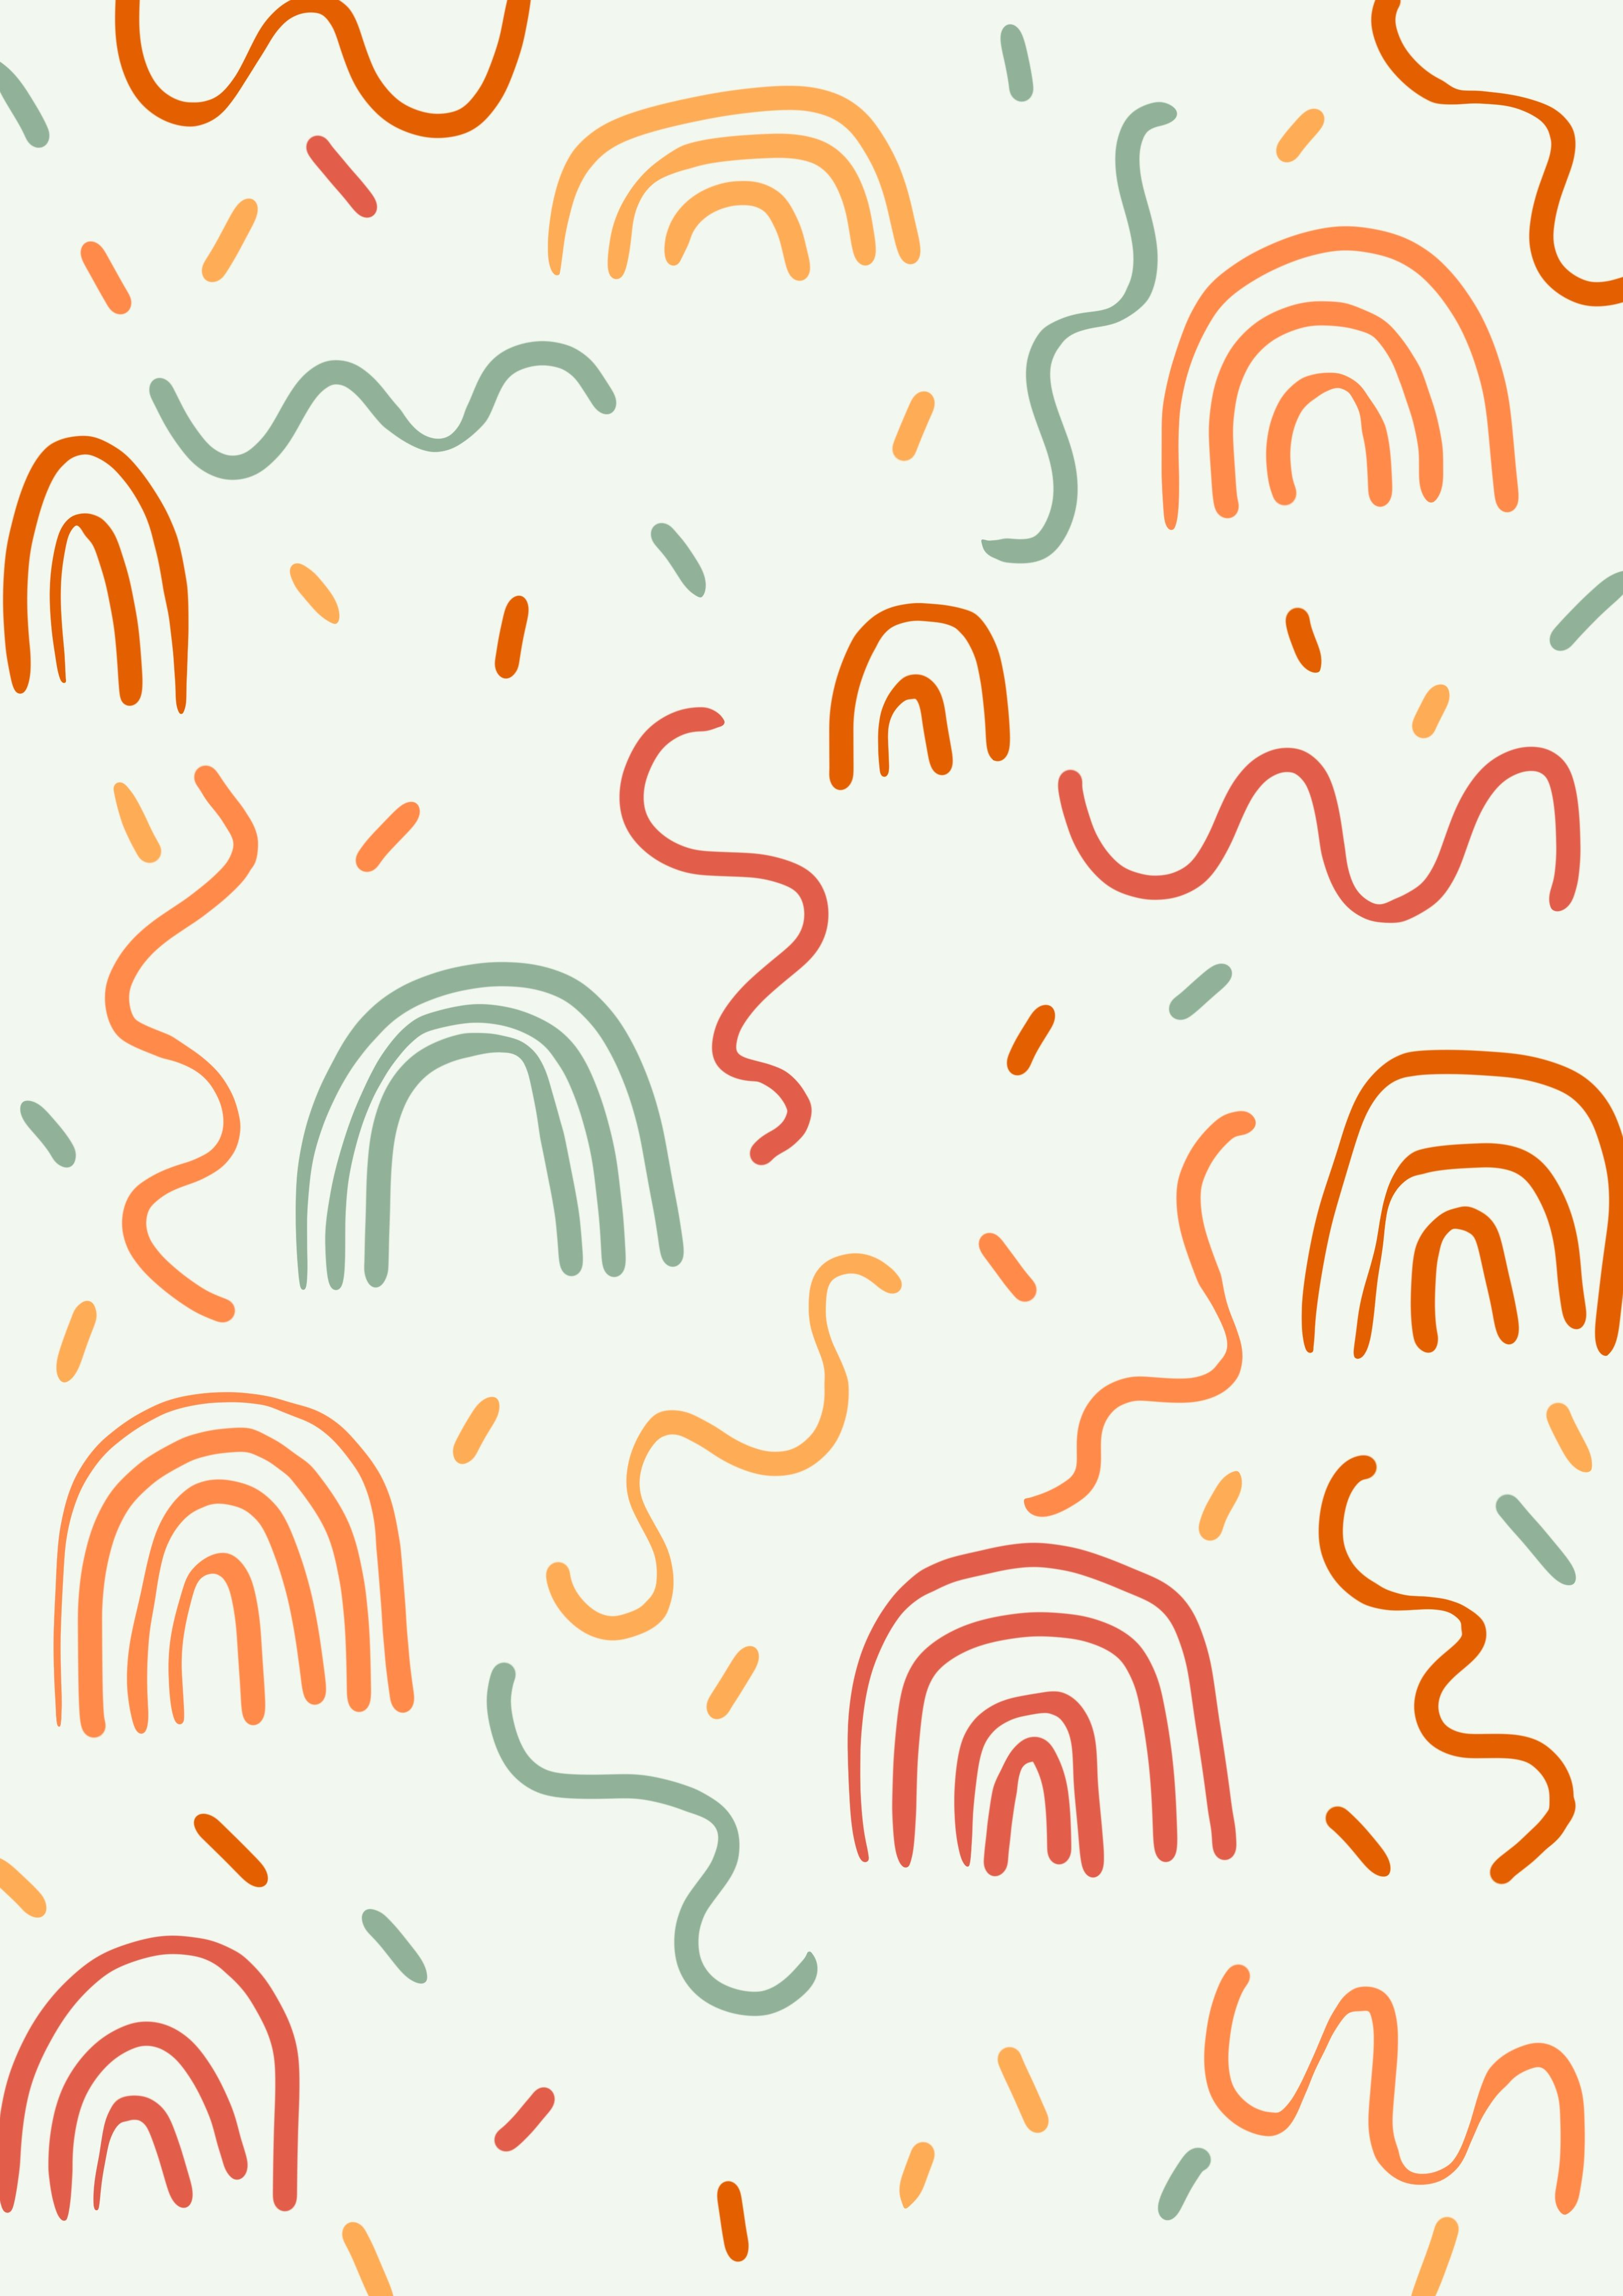 Cute Aesthetic Patterns : aesthetic, patterns, Charlotte, Dreams, Illustrations, Abstract, Colorful, Pattern, Drawing, Iphone, Background, Wallpaper,, Patterns, Wallpaper